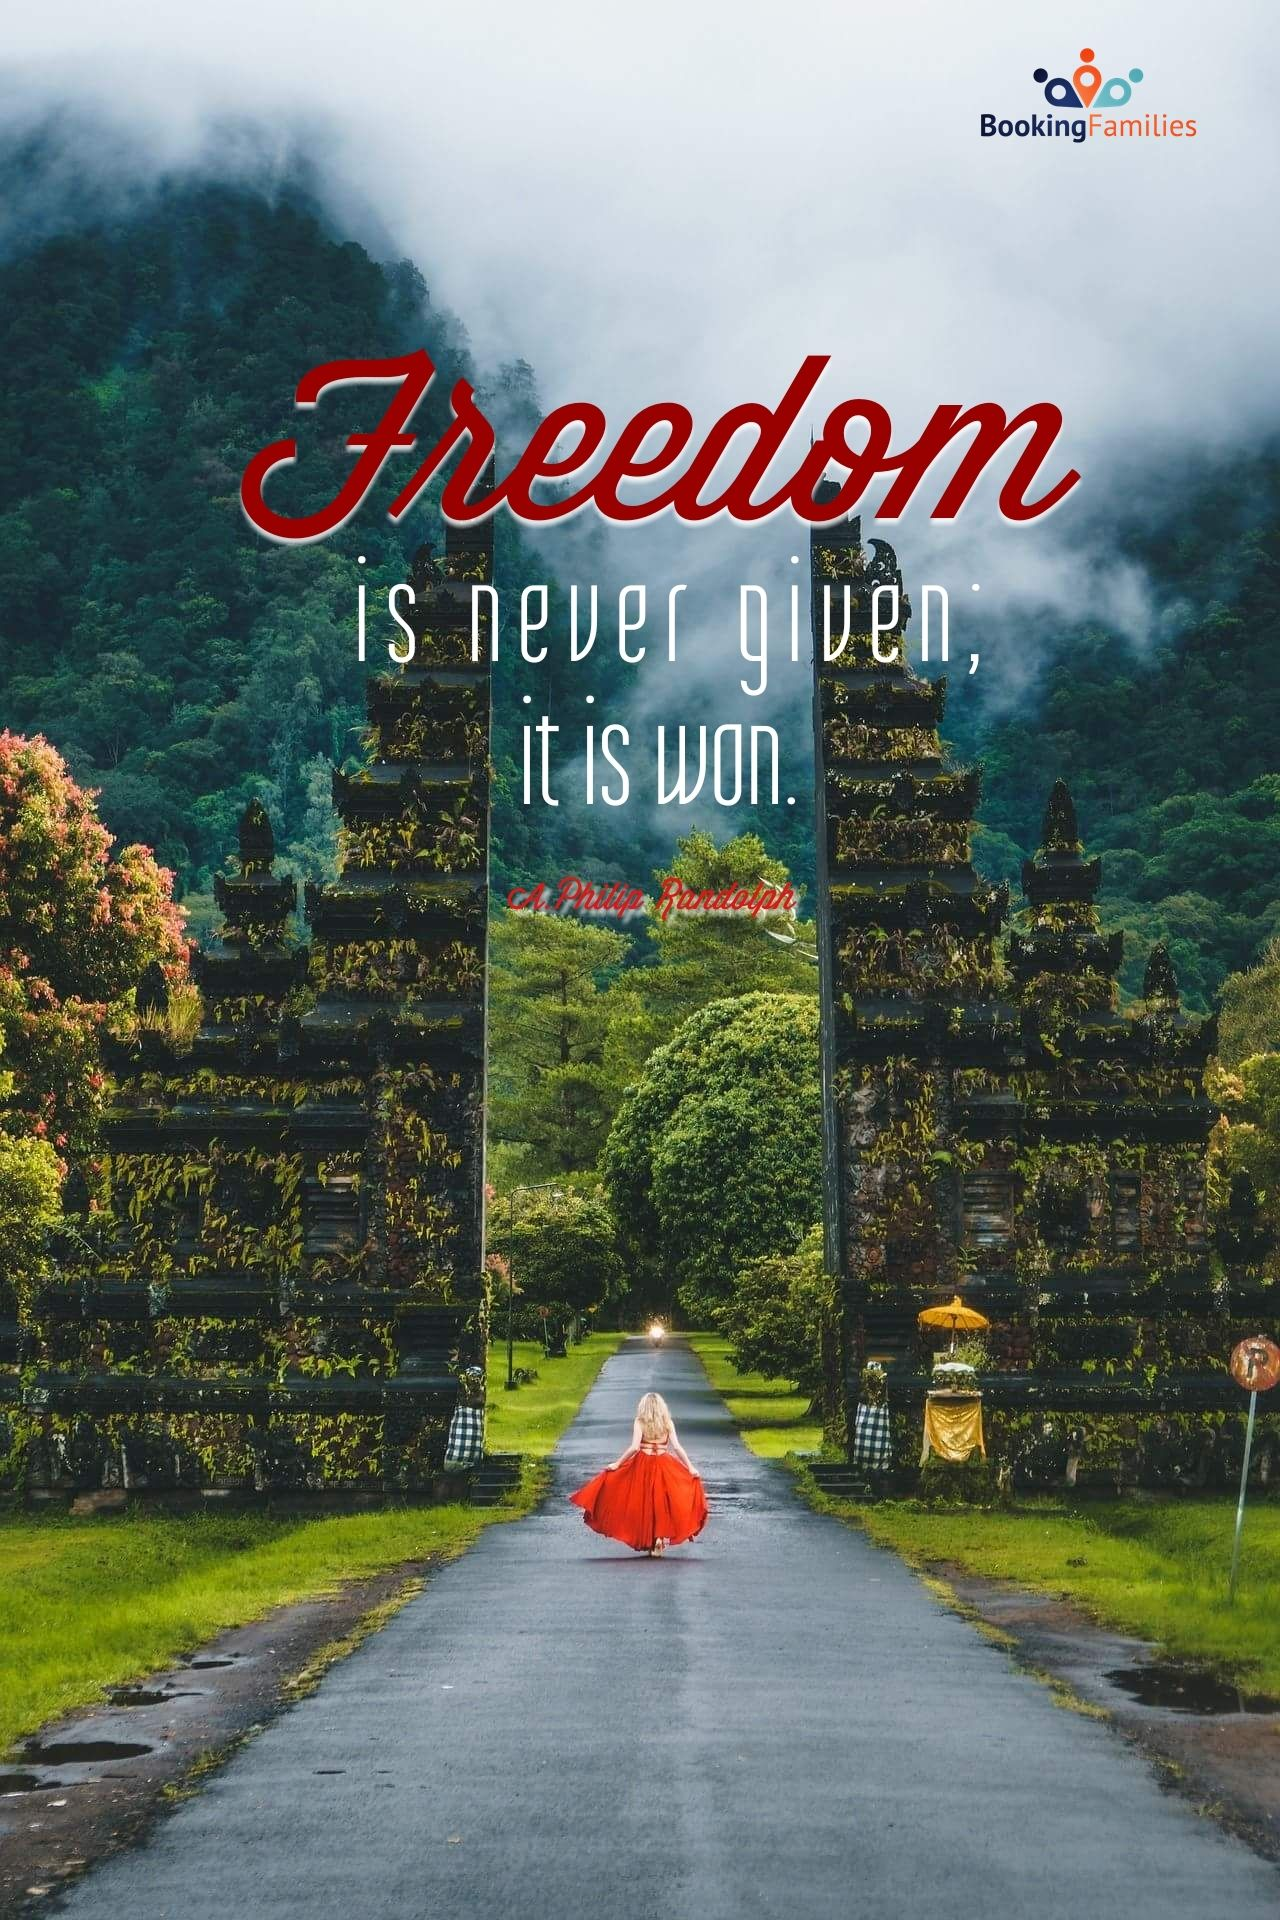 Travel Quotes Freedom Adventure Explore World Beautifull Girl Vacation Travel The World Quotes Travel Quotes Adventure Travel Photography Inspiration